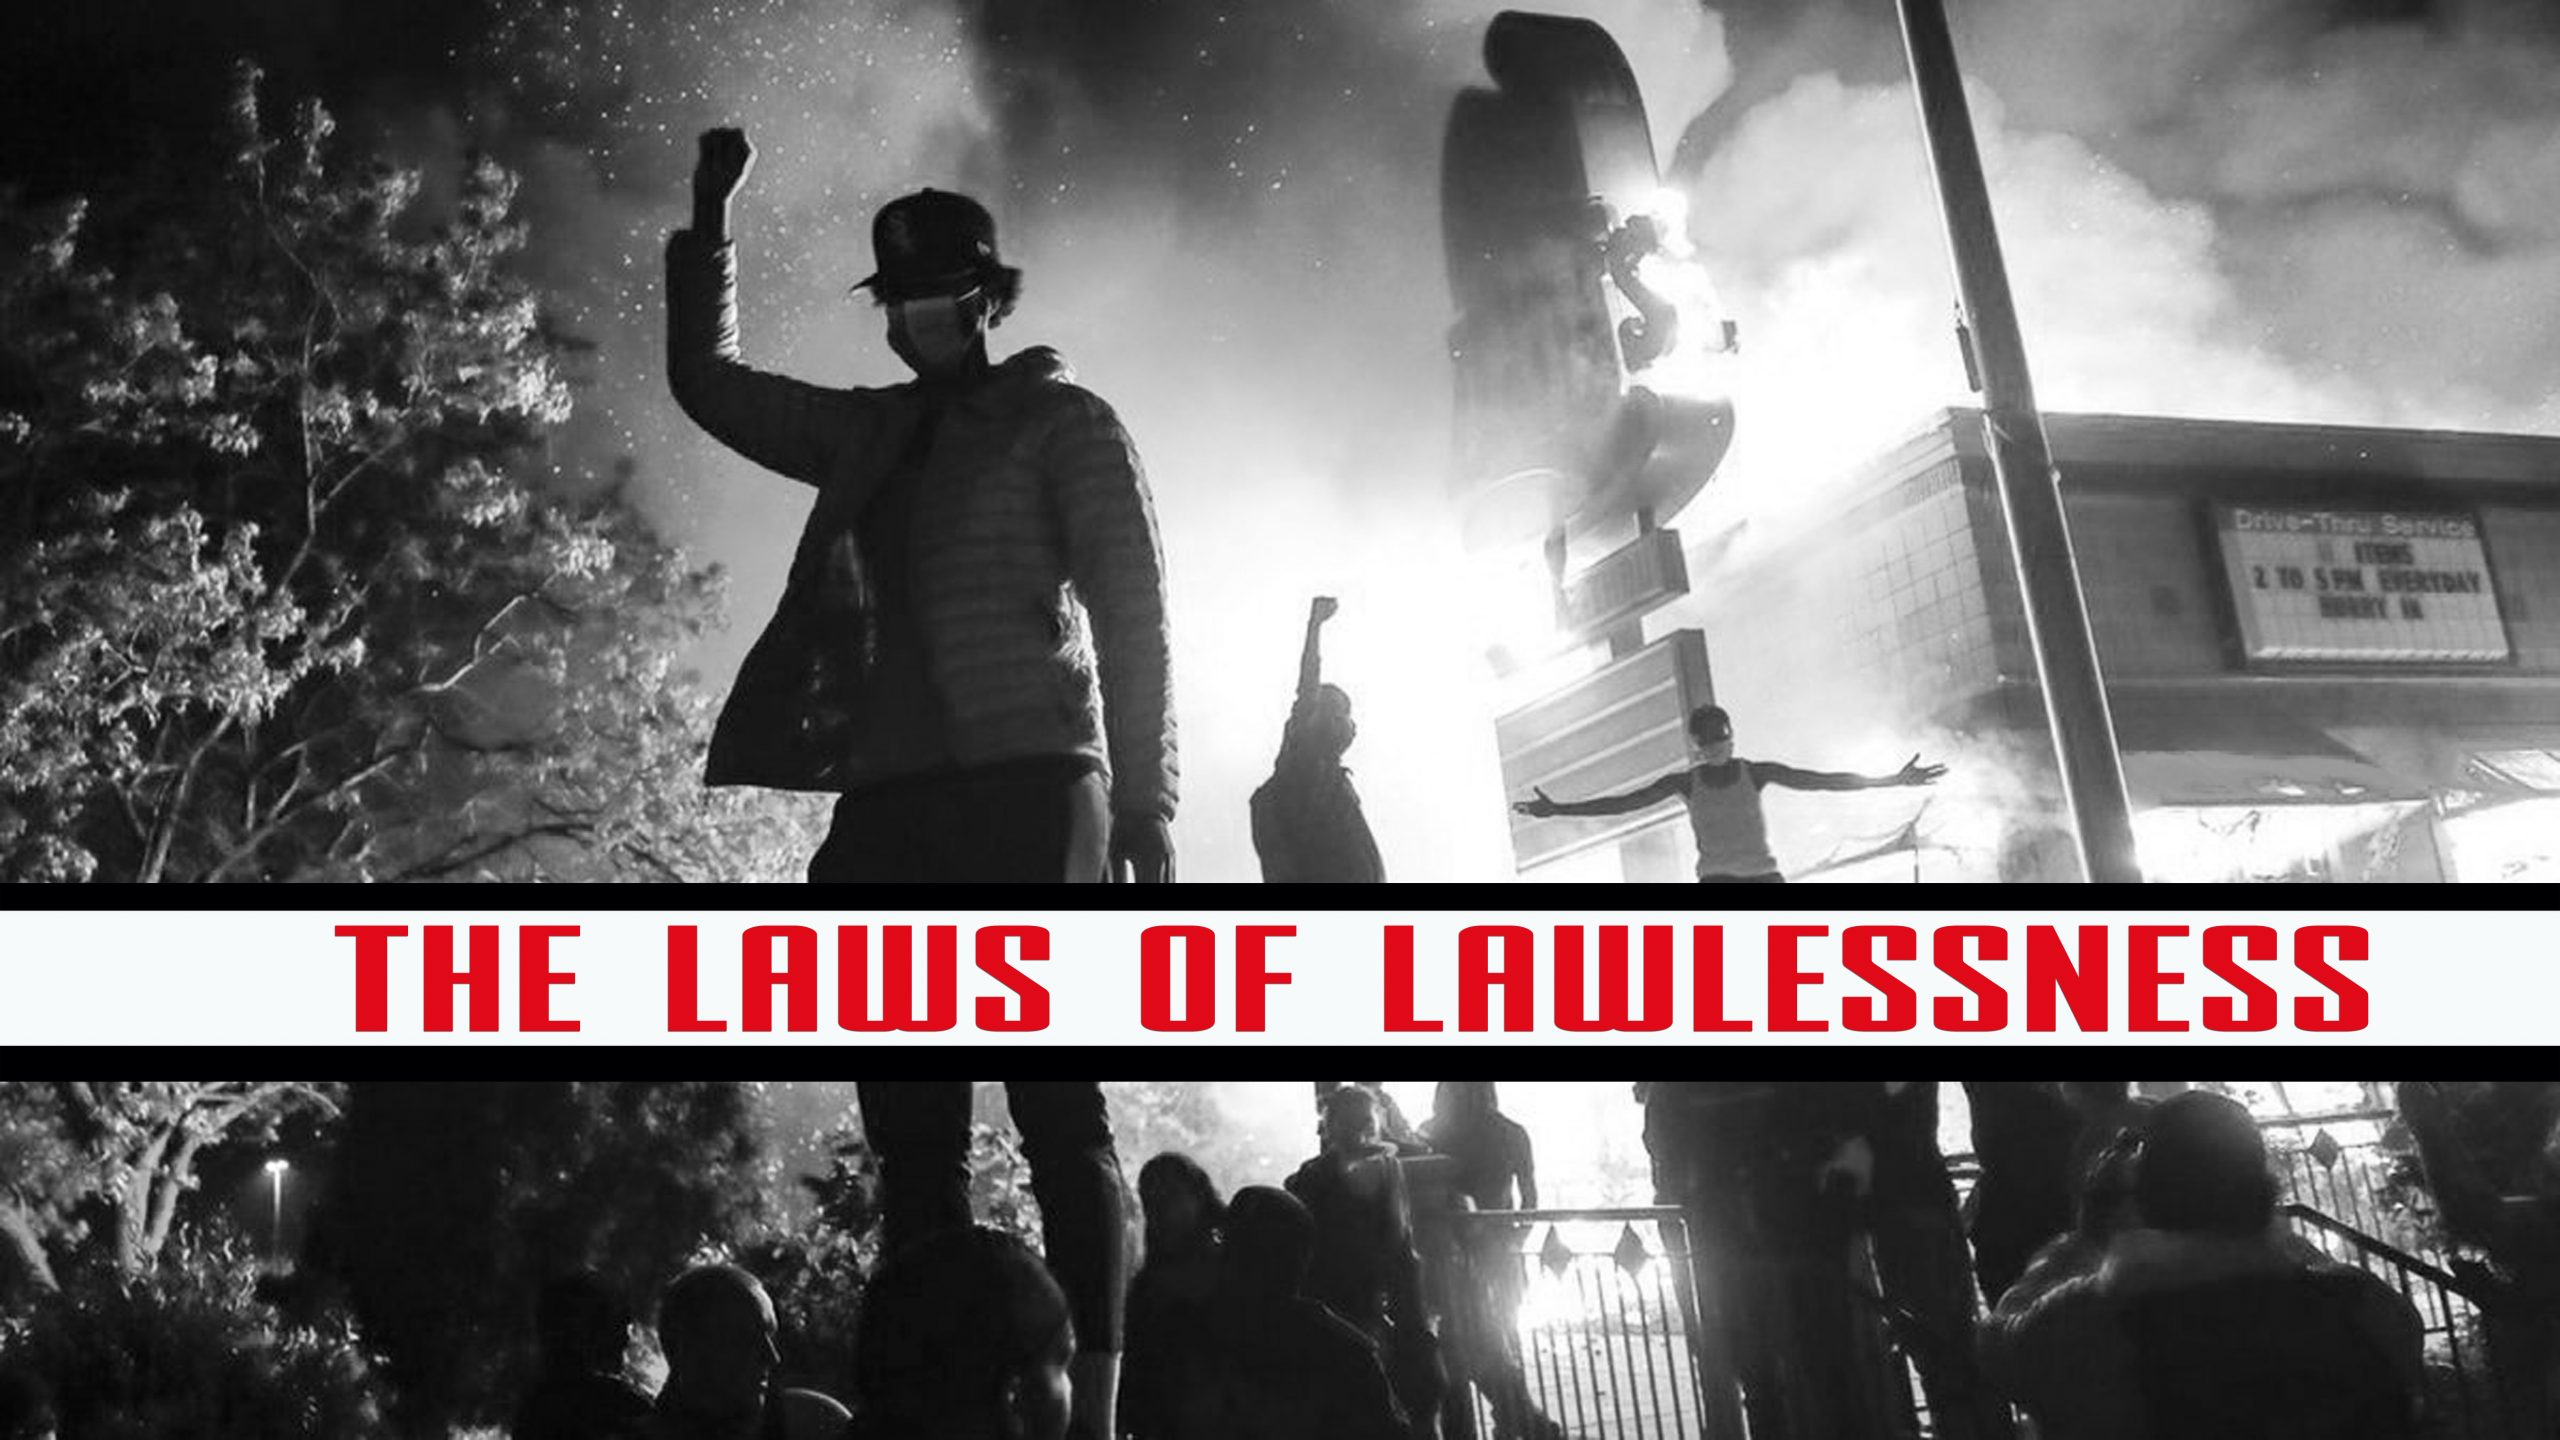 THE LAWS OF LAWLESSNESS